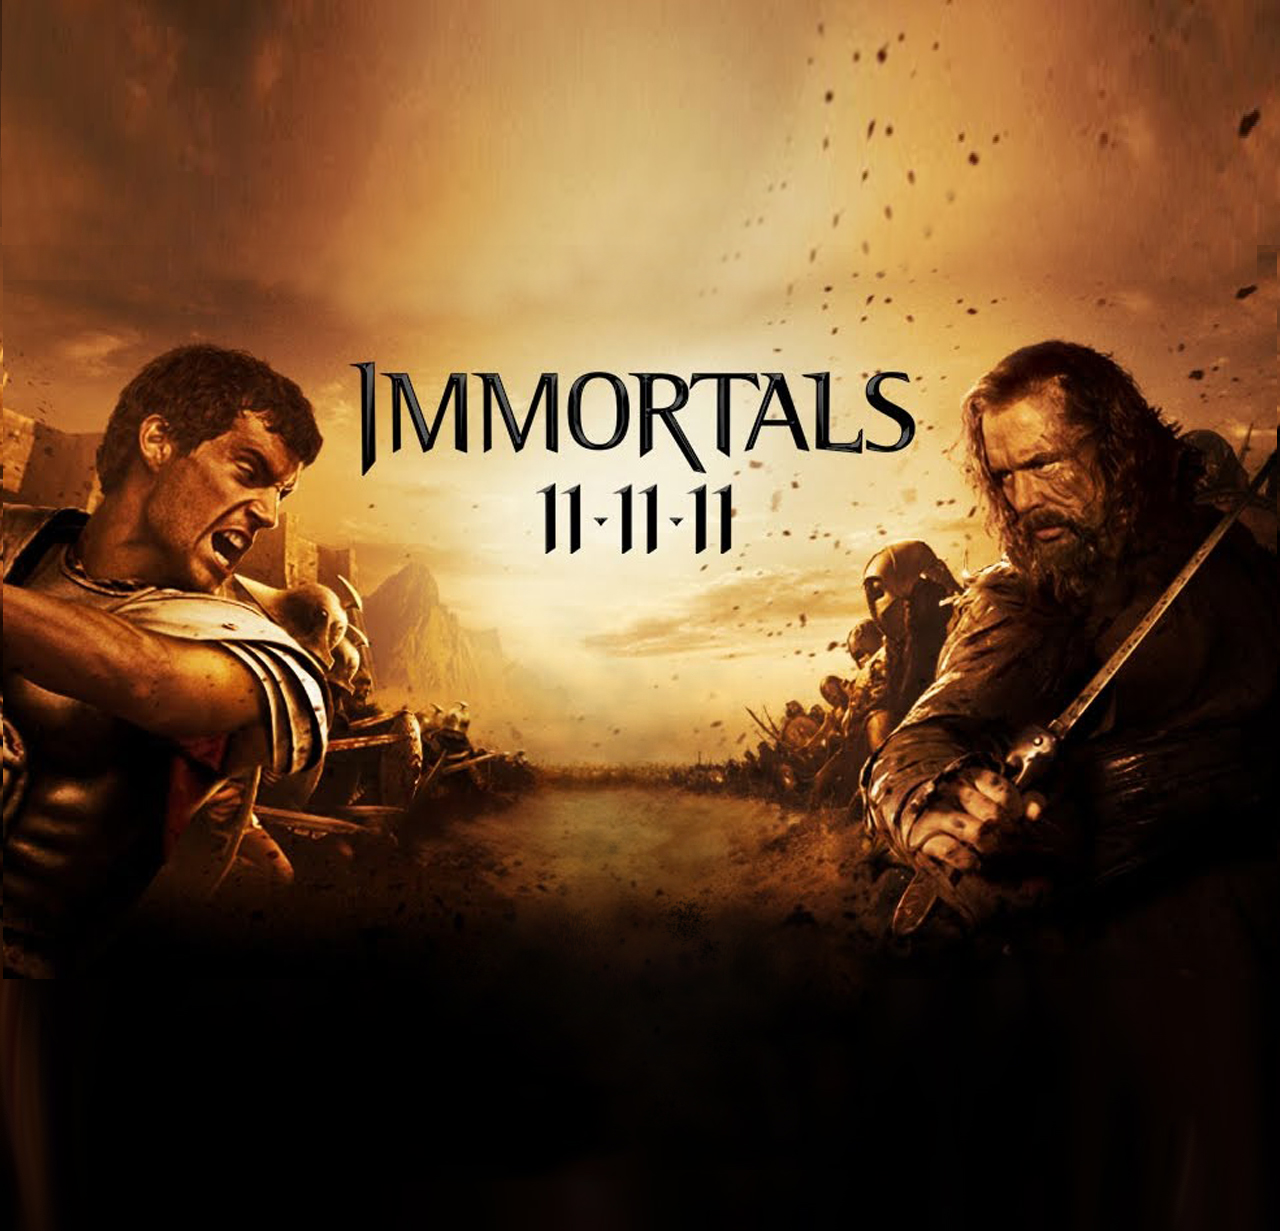 immortals full frame